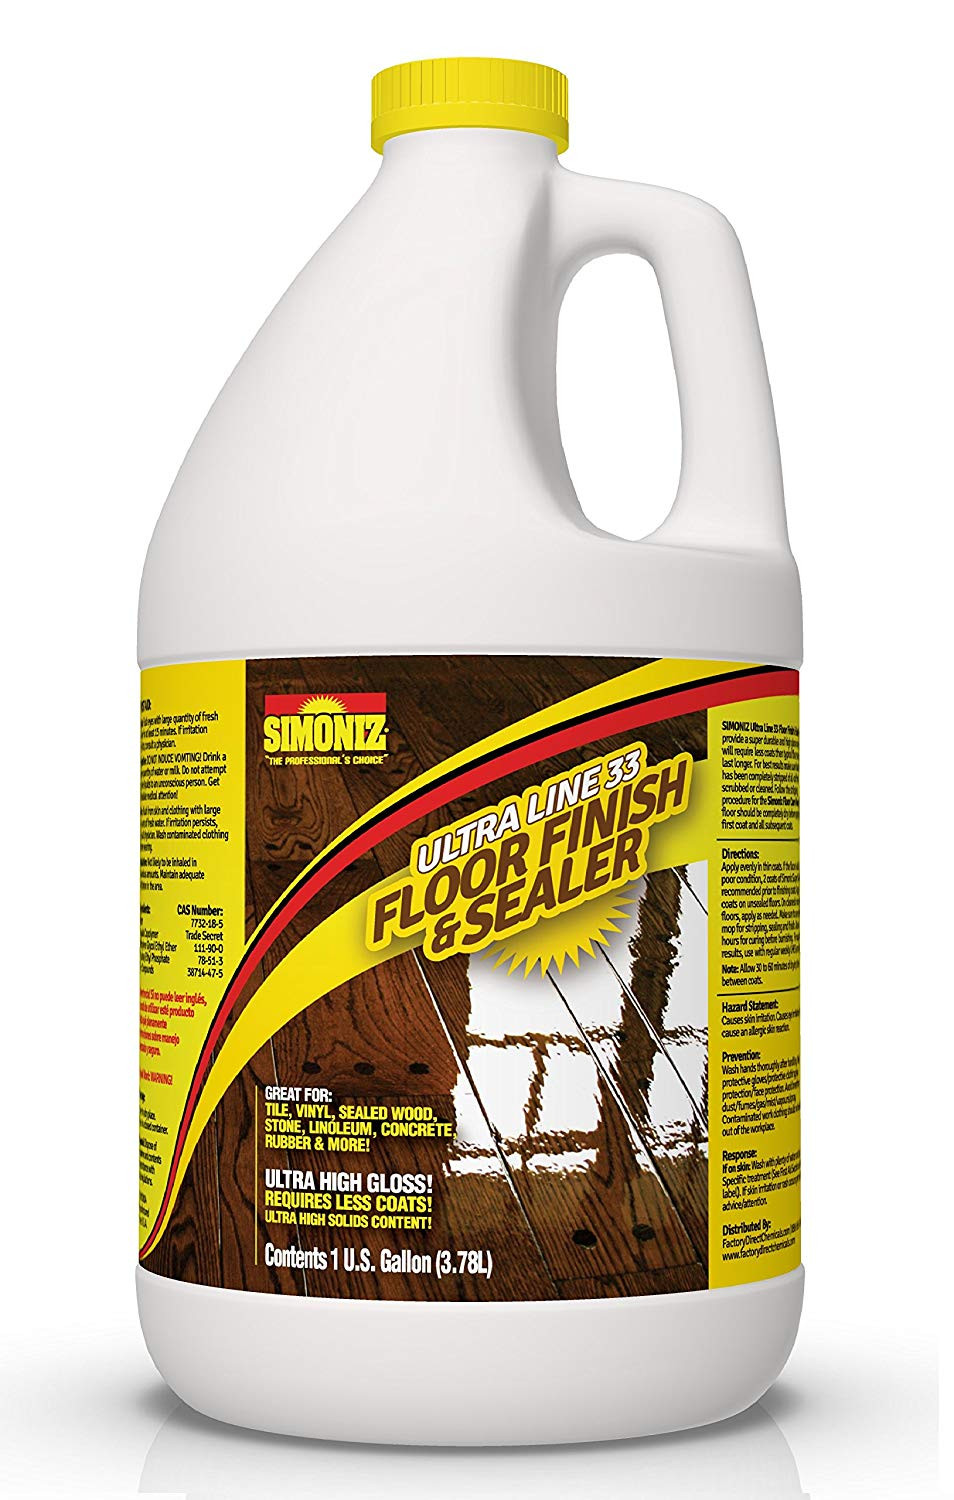 zep commercial hardwood laminate floor cleaner of amazon com ultra high gloss 33 solids floor finish wax 1 gallon intended for amazon com ultra high gloss 33 solids floor finish wax 1 gallon more durable less coats less labor health personal care